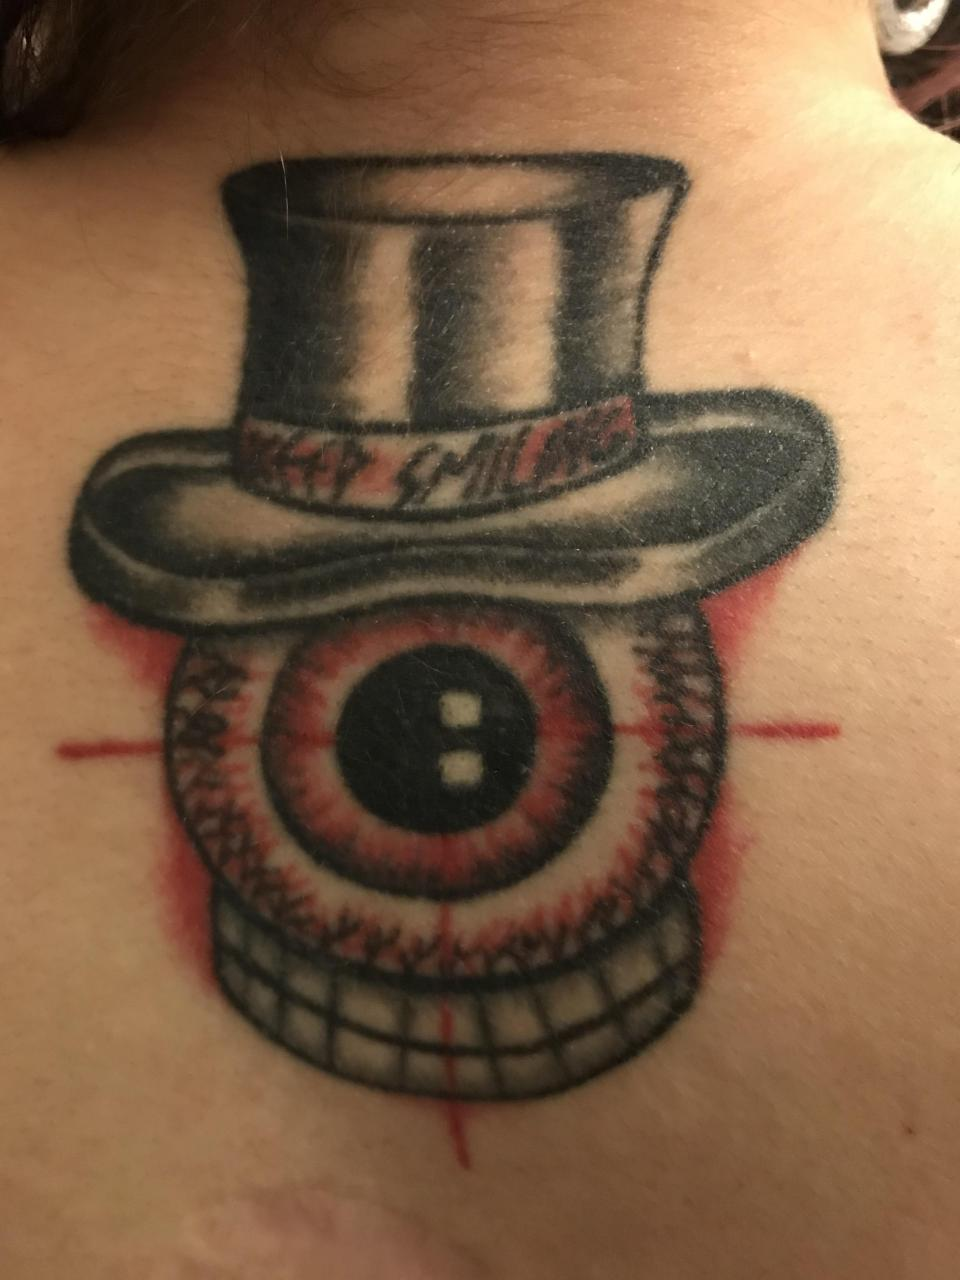 Here's my first tattoo, it's on the back of my neck. Amy from Shamballas did this